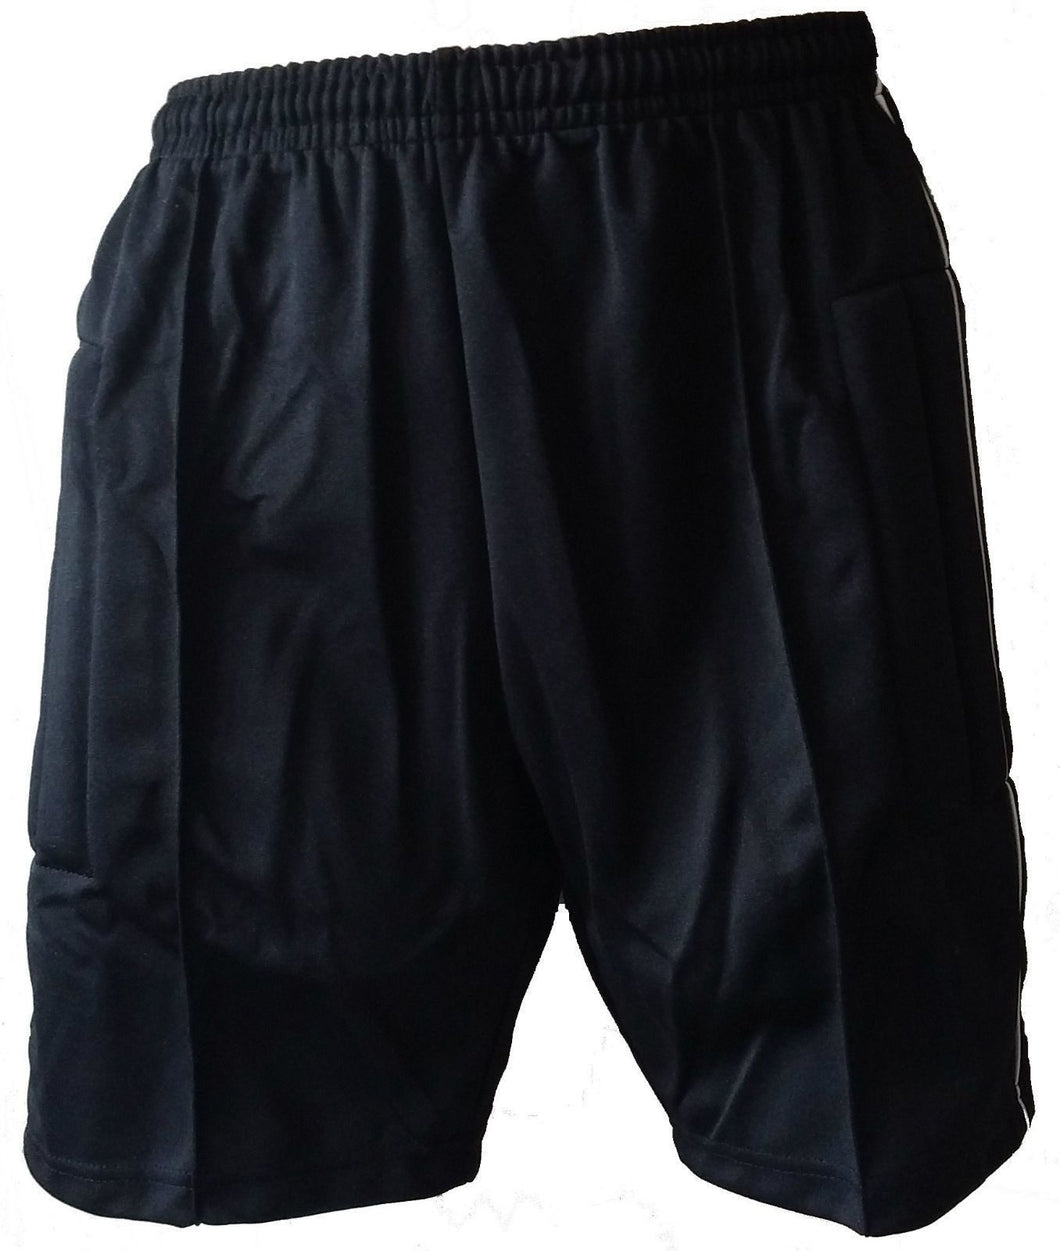 Soccer Goalkeeper Shorts Padded Black Goalie